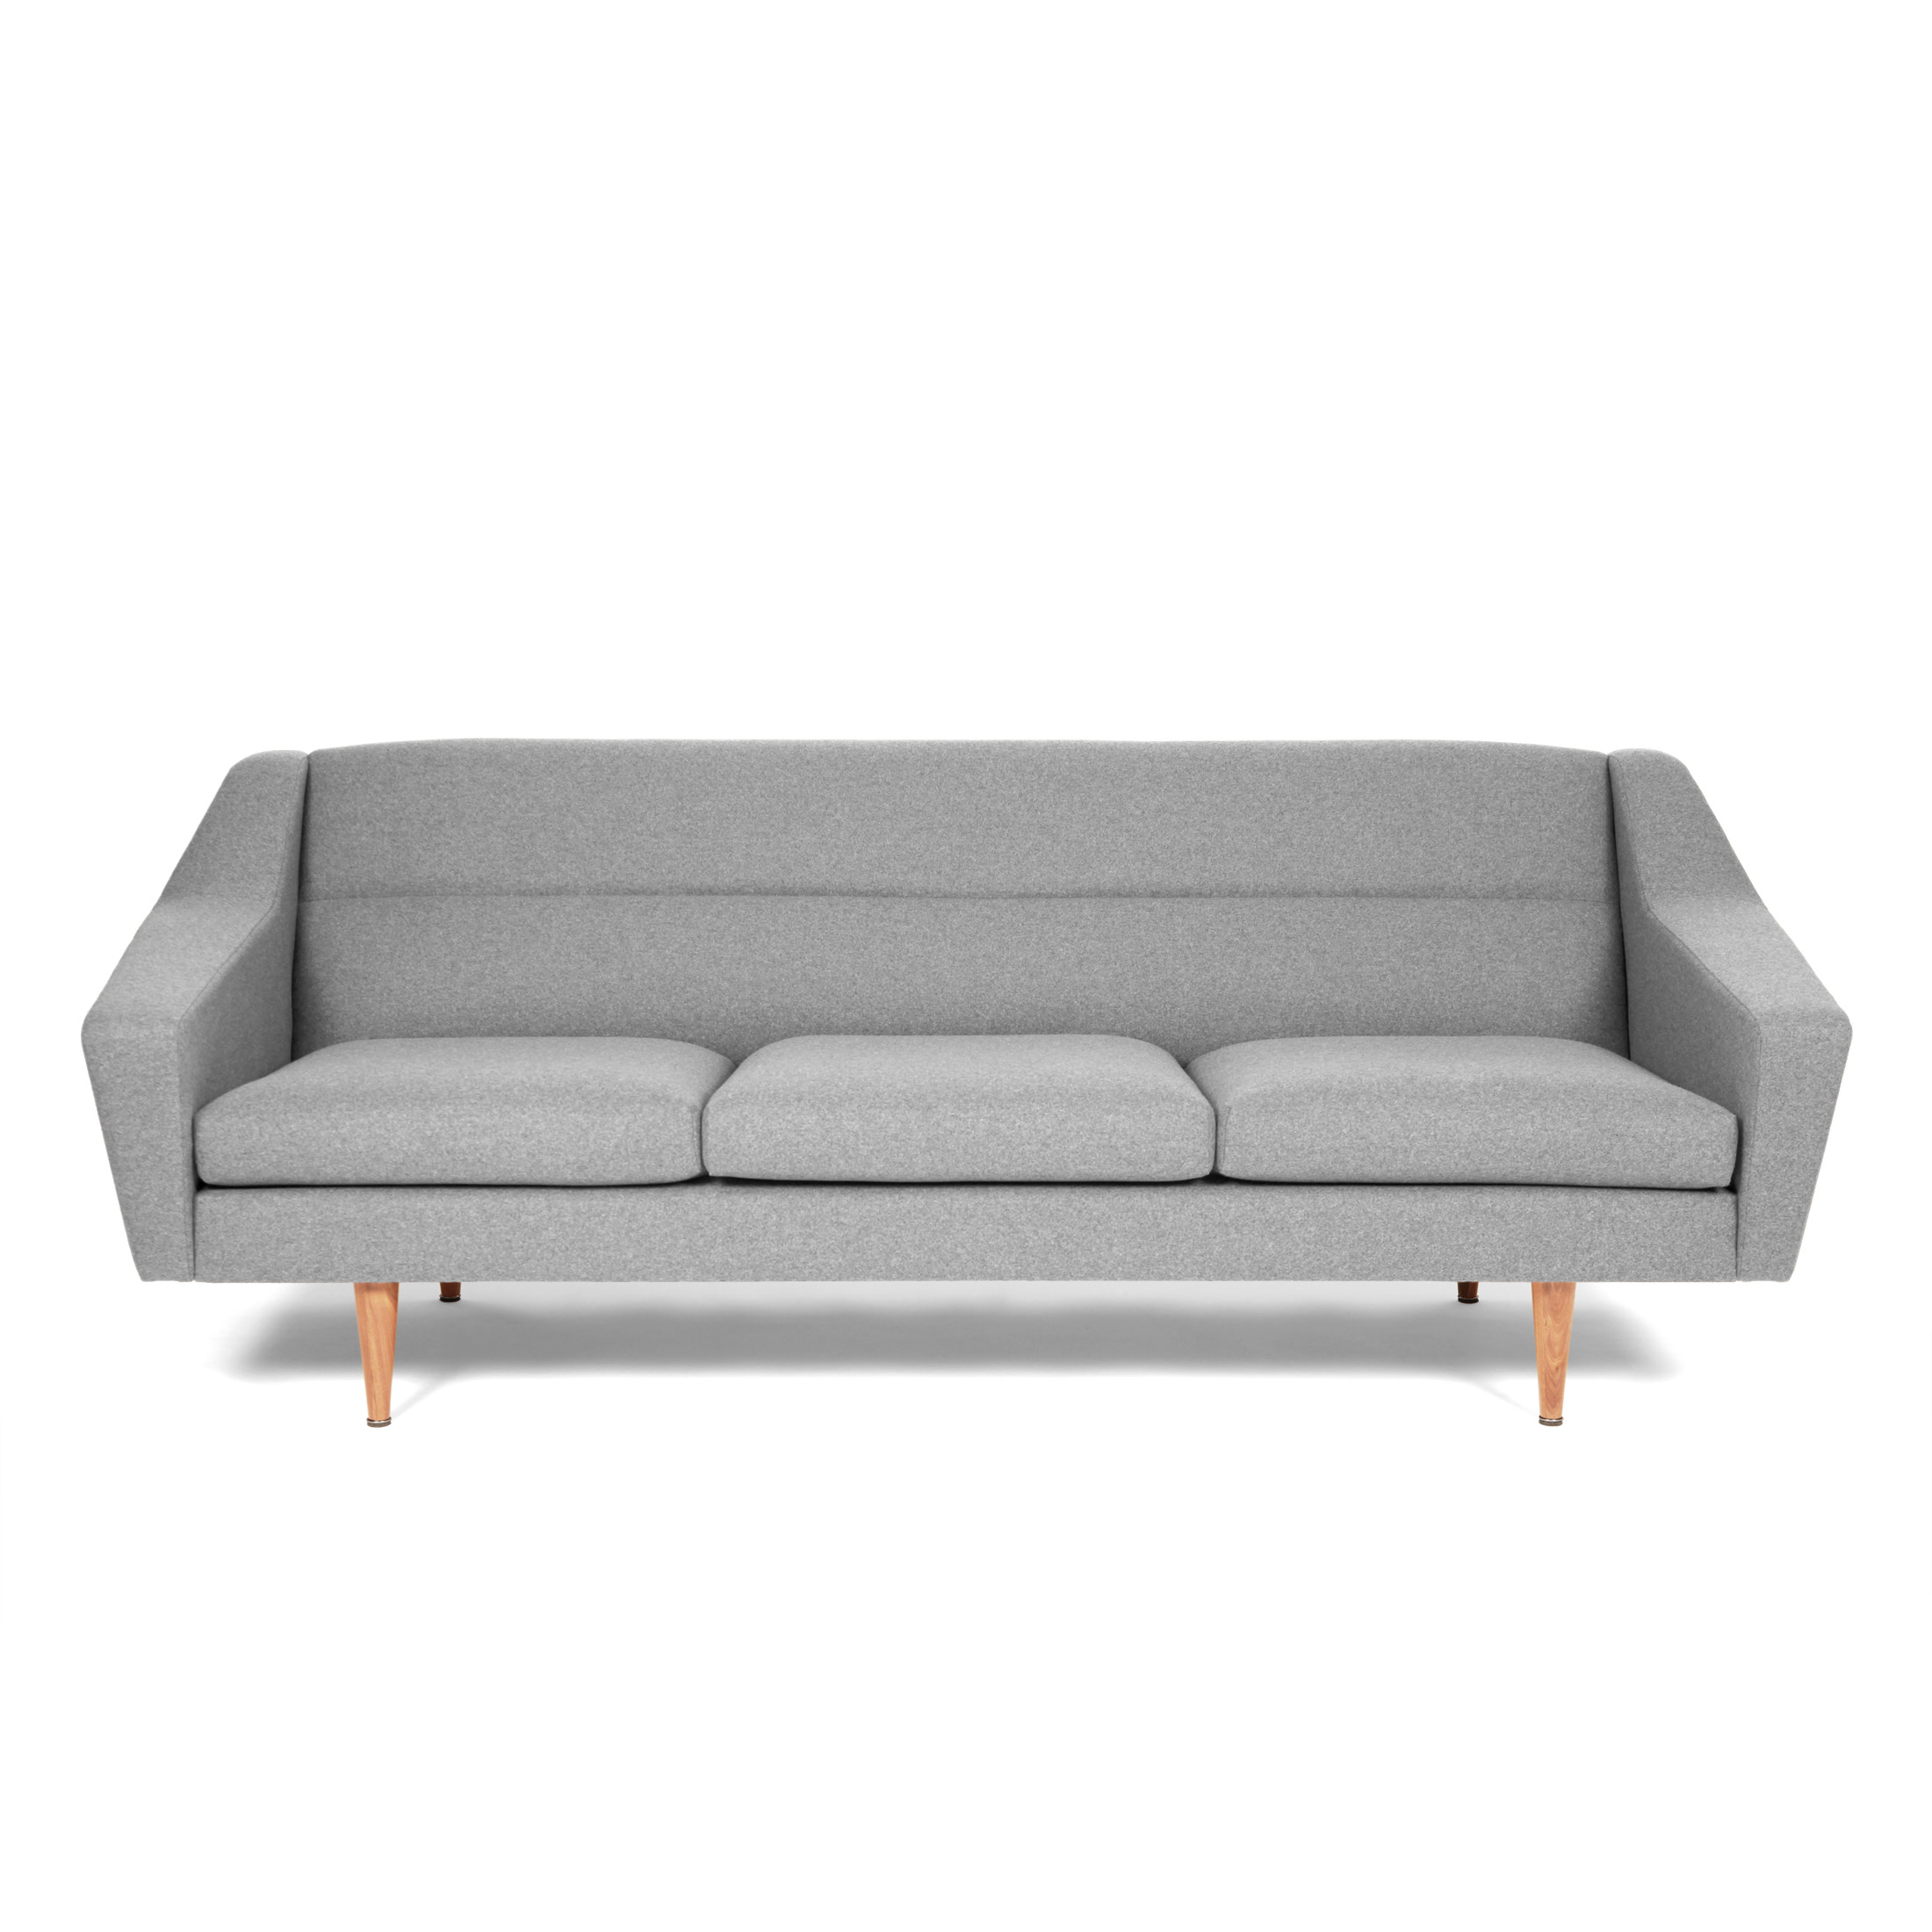 3er-Sofa im Retro-Look